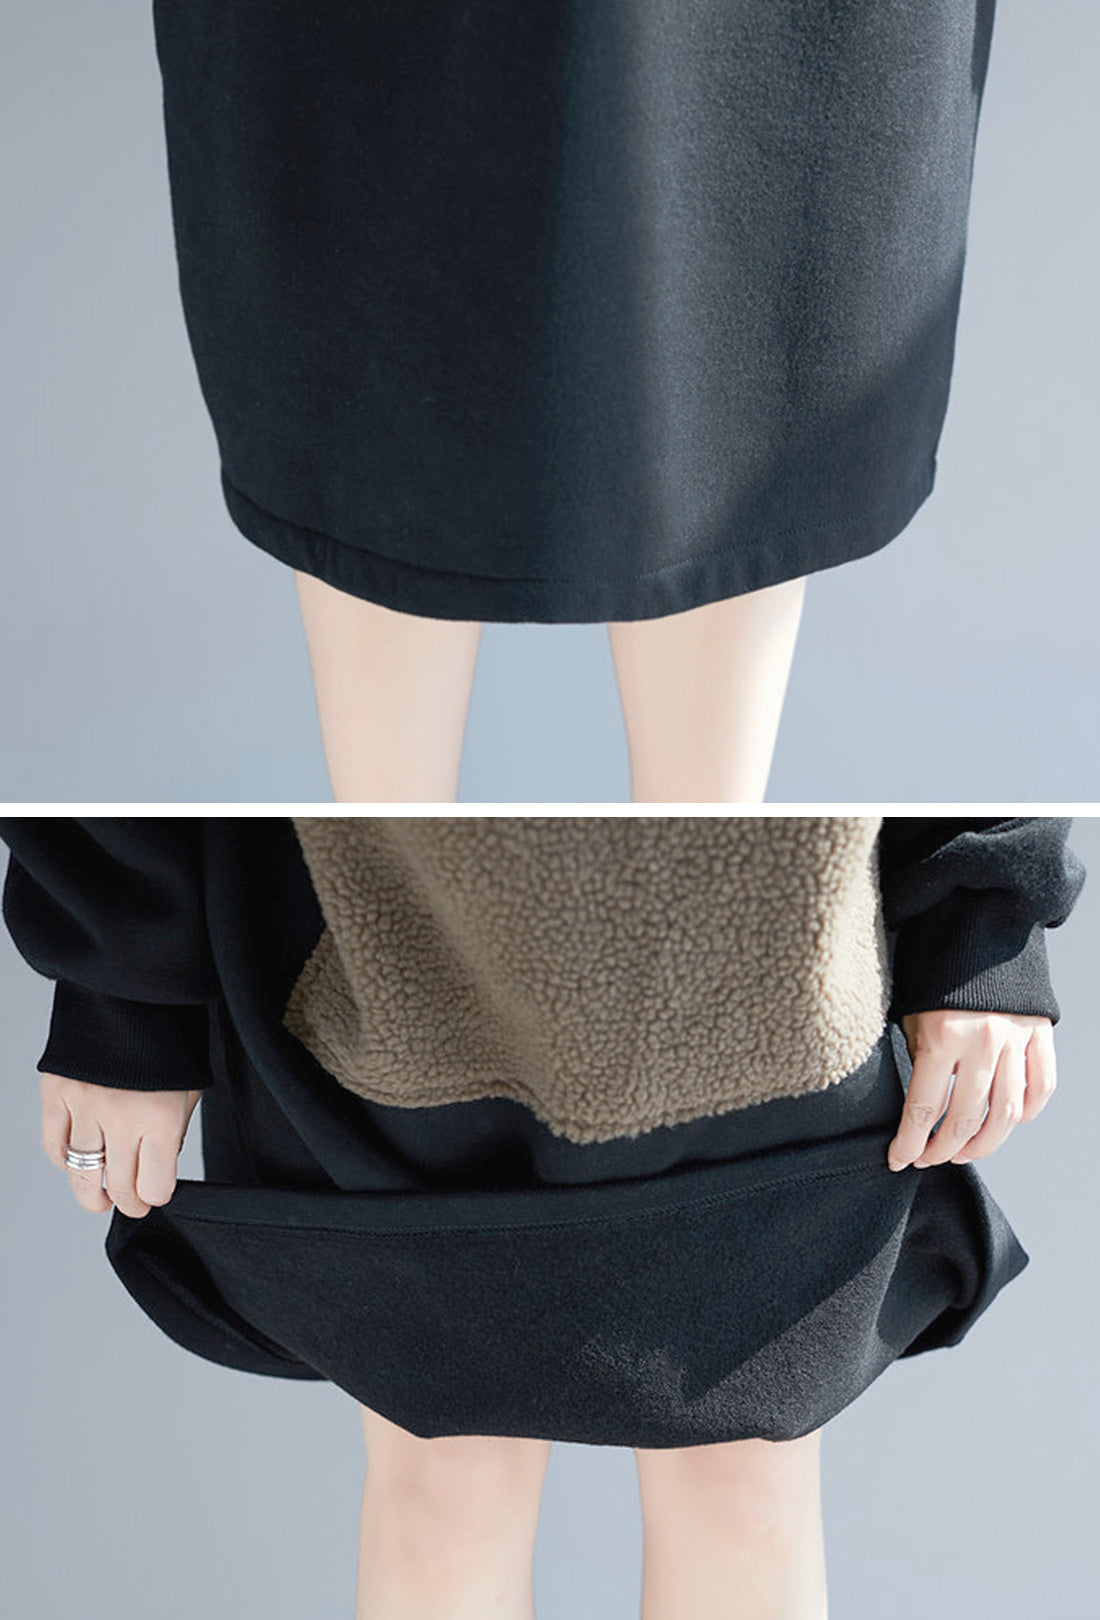 Lamb Cashmere & Cotton Hooded Sweatshirt Dress Details 3